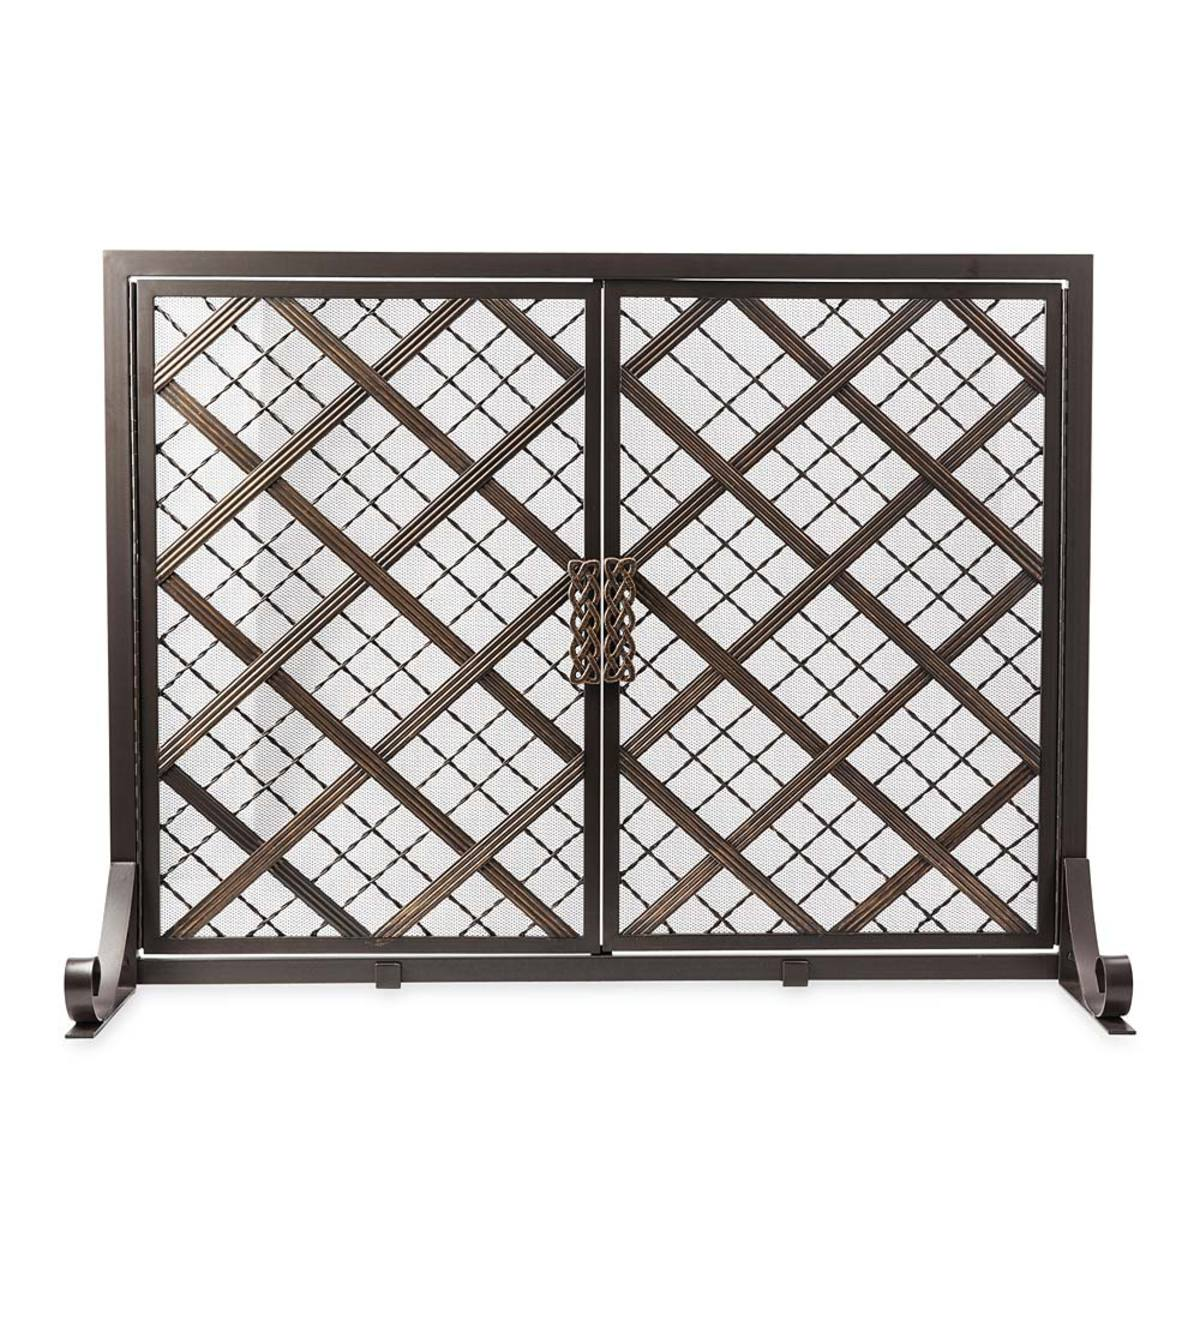 McCormick Celtic Fireplace Screen, Large - Bronze